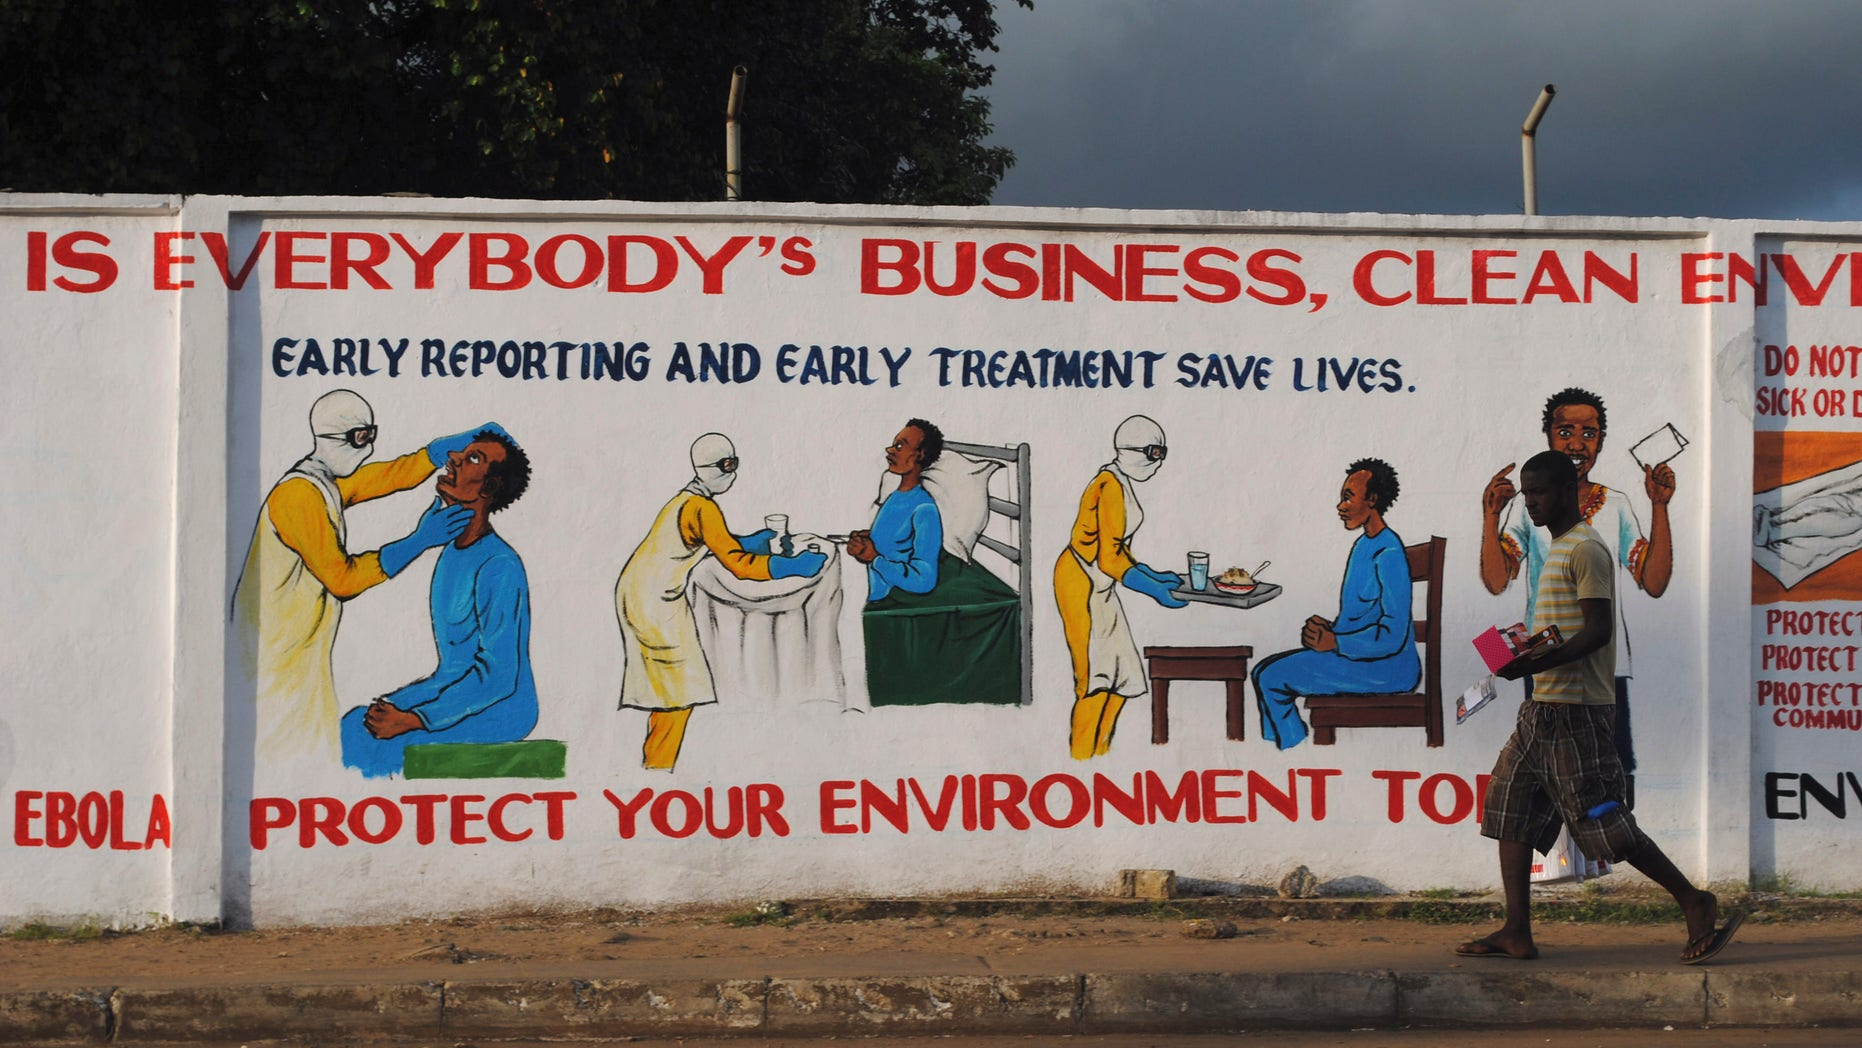 A man walks by a mural with health instructions on treating the Ebola virus, in Monrovia, November 18, 2014. REUTERS/James Giahyue